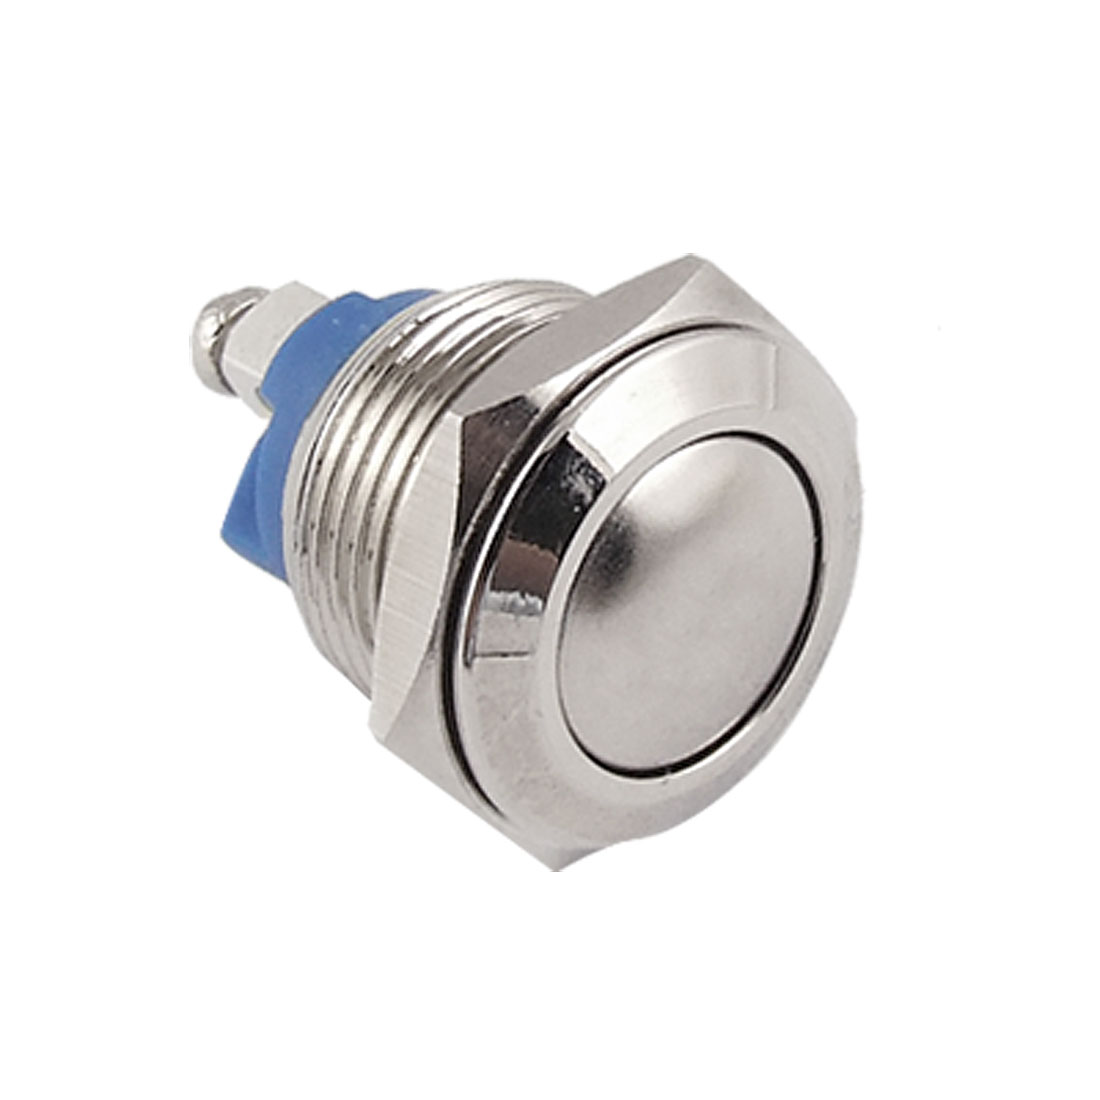 16mm-DC-36V-2A-Screw-Metal-Round-Momentary-Push-Button-Switch-Ebtug